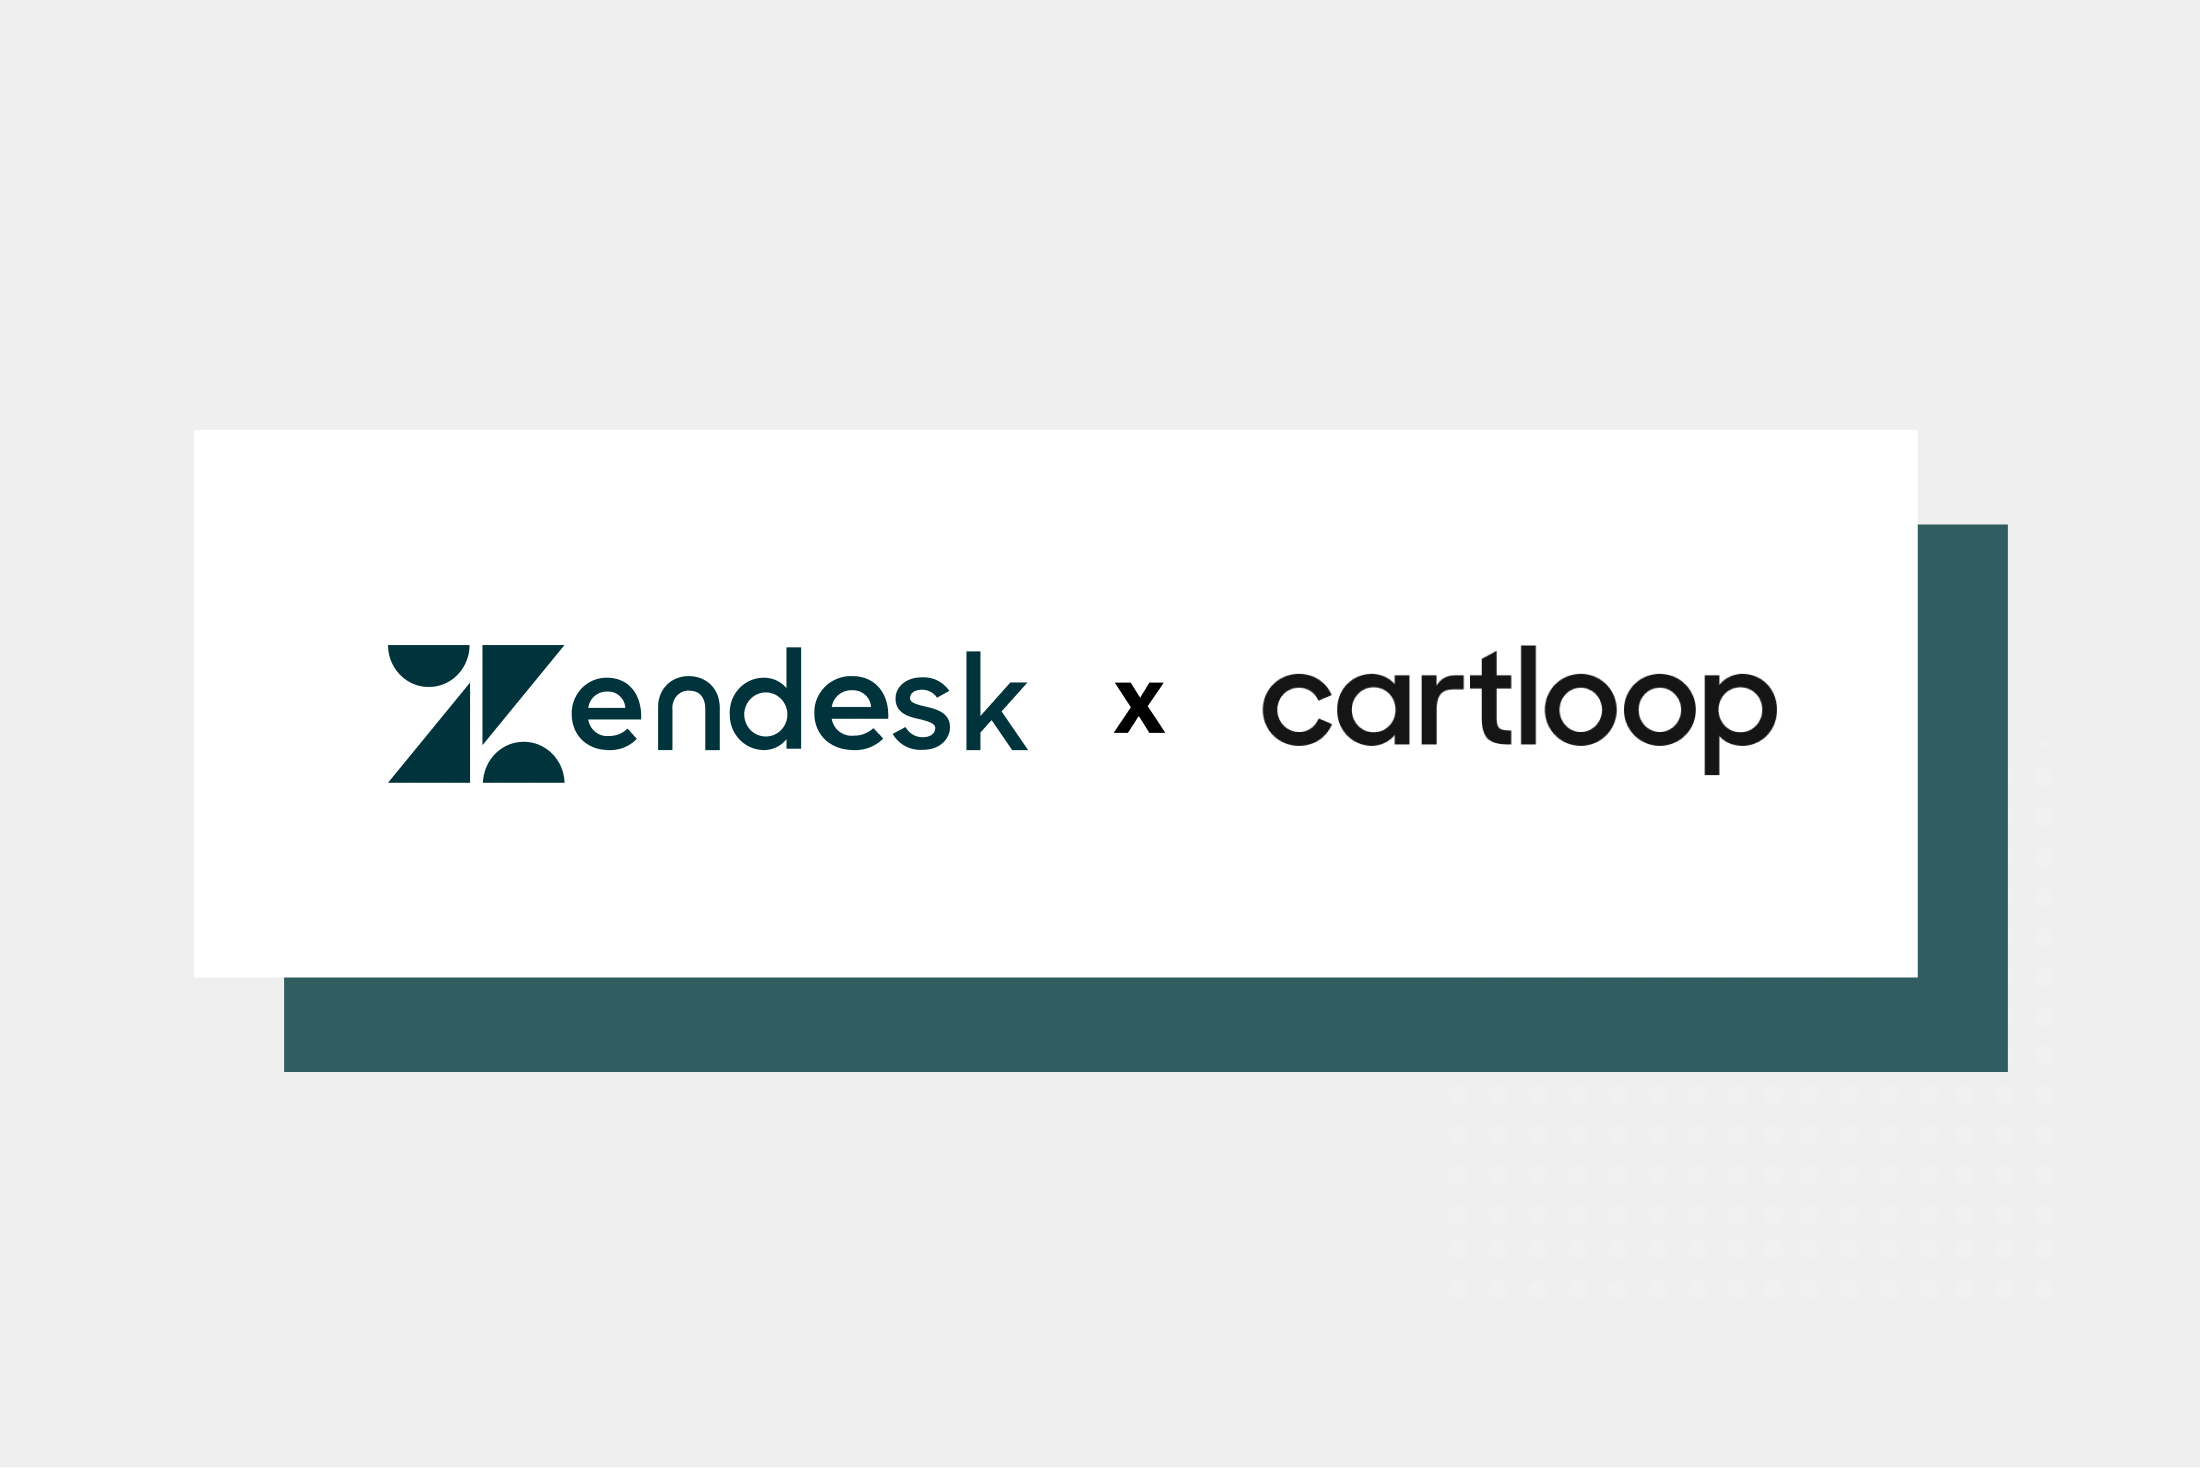 New Integration Available: Zendesk x Cartloop